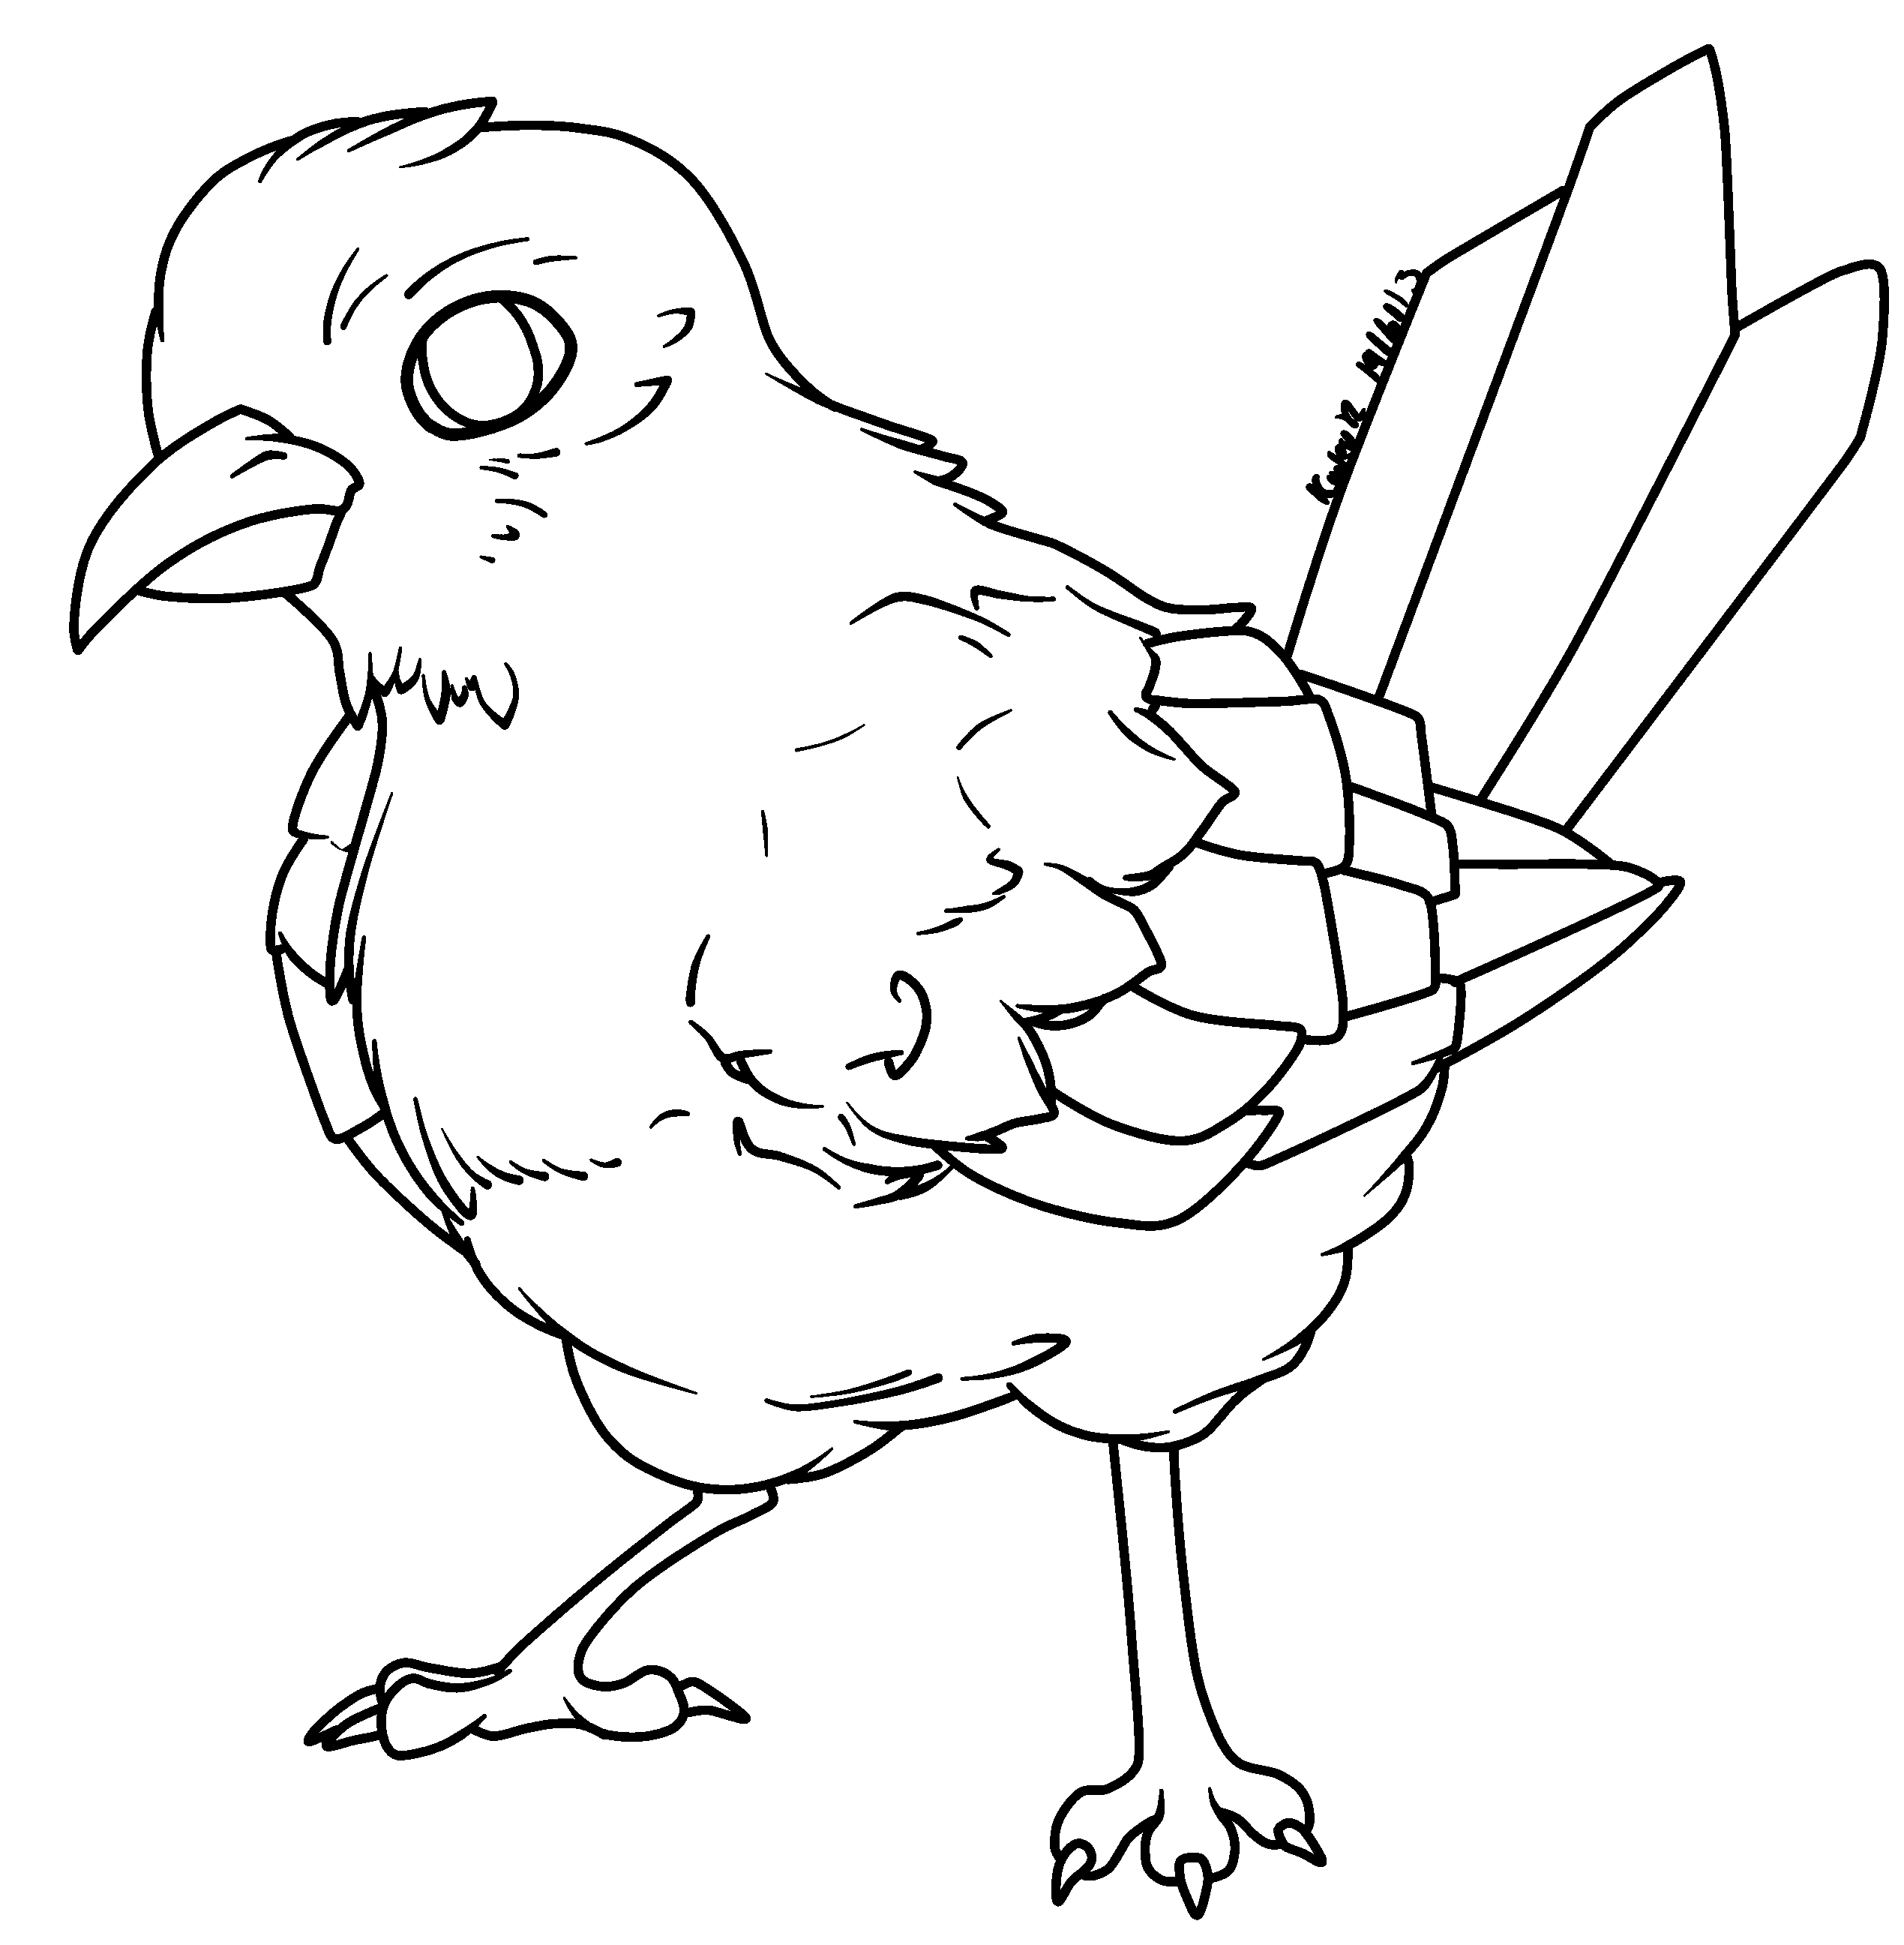 Line Art Of Animals : Rq bird lineart by abyssinchaos on deviantart